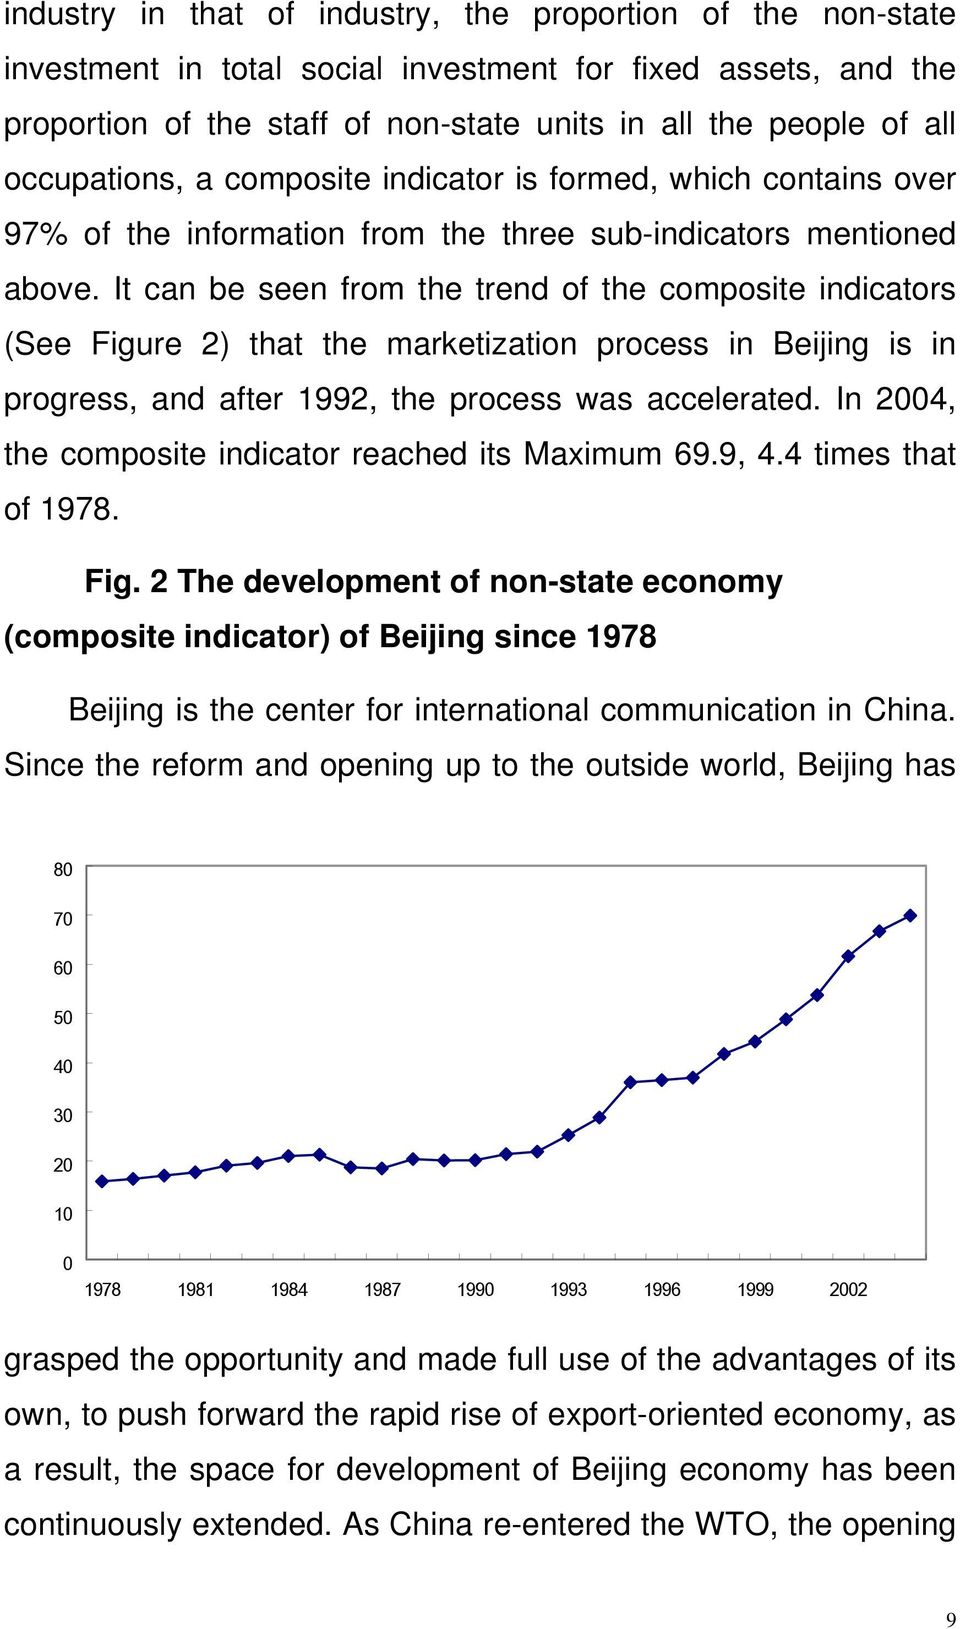 It can be seen from the trend of the composite indicators (See Figure 2) that the marketization process in Beijing is in progress, and after 1992, the process was accelerated.